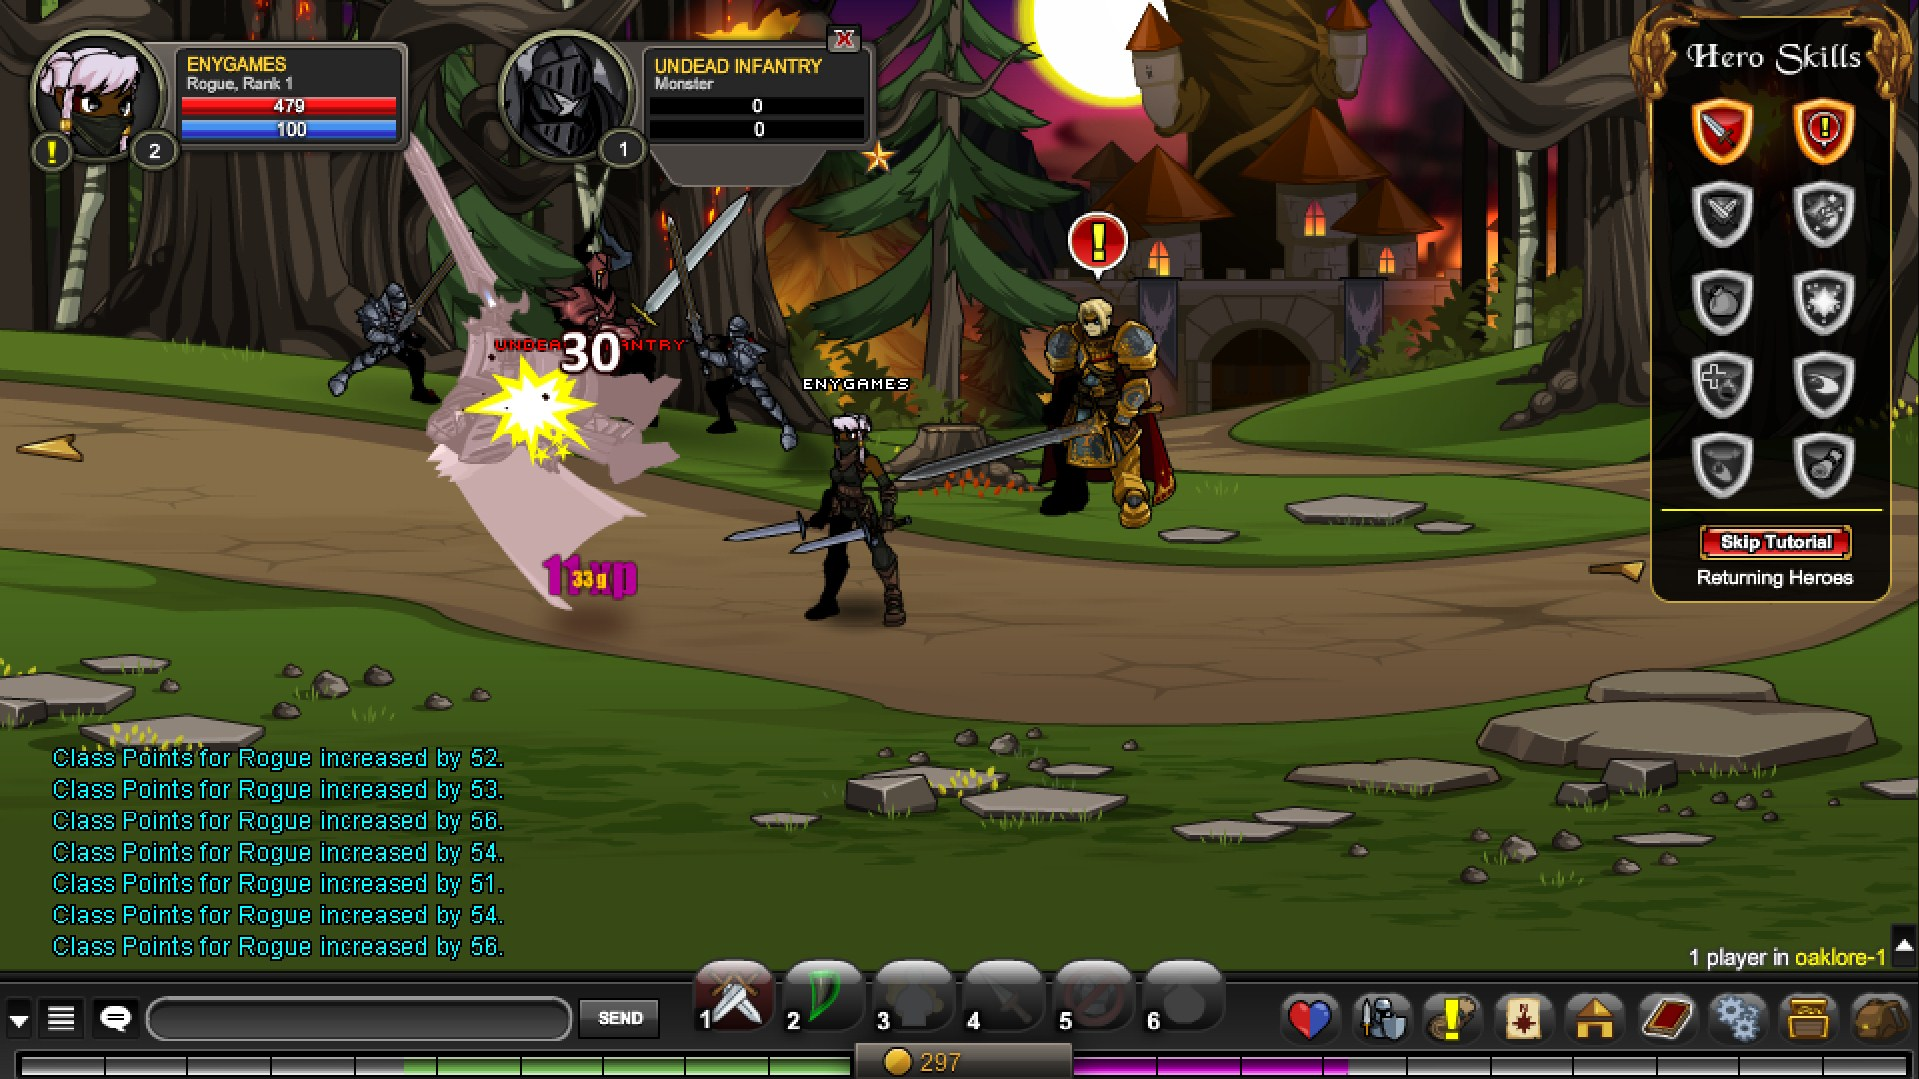 AdventureQuest Worlds - Games Like, Review, Gameplay, Classes, Similar Games